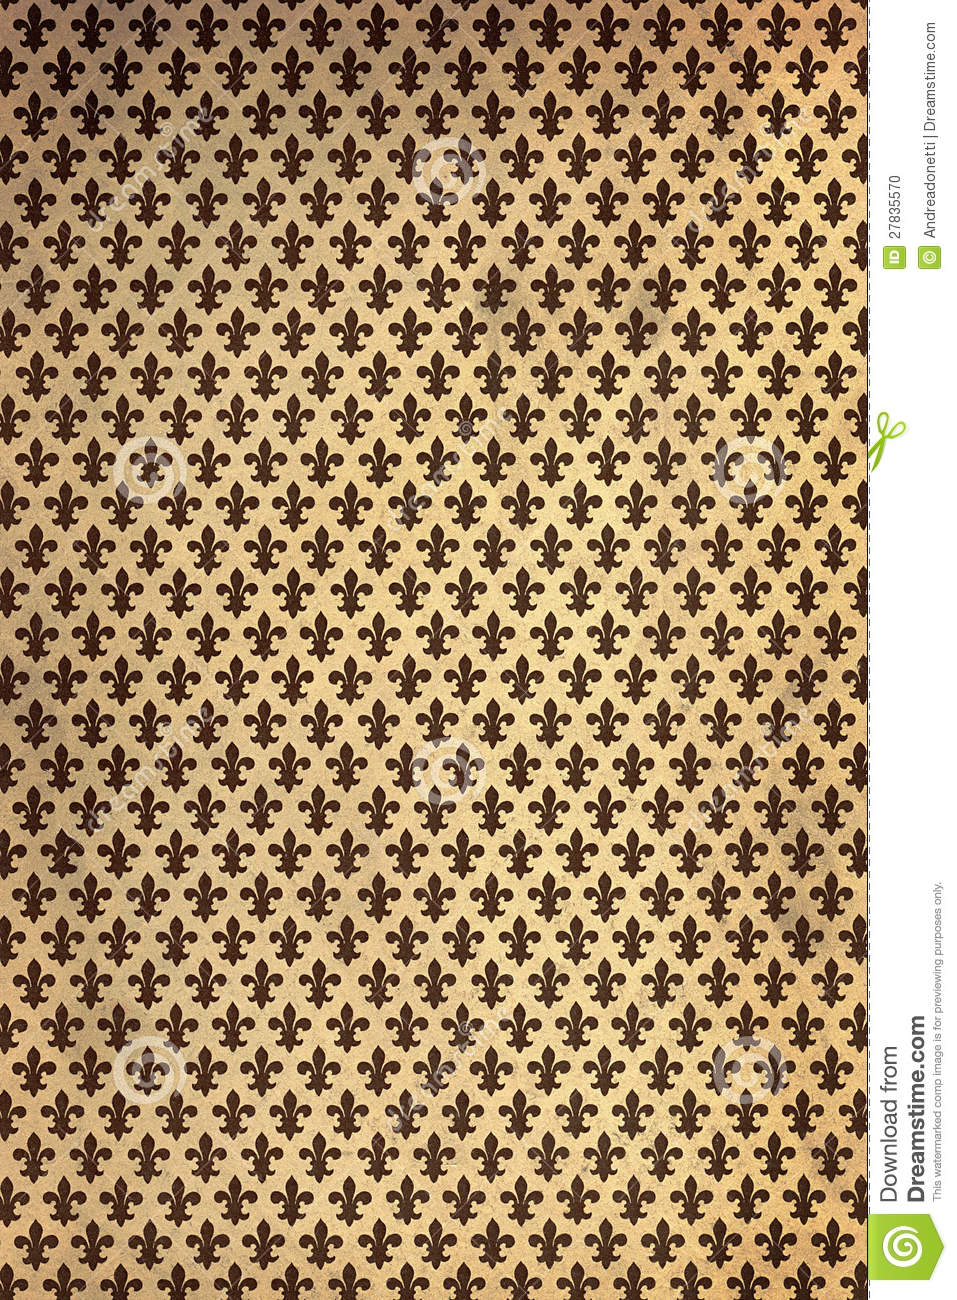 papier peint de fleur de lys de cru photo stock image 27835570. Black Bedroom Furniture Sets. Home Design Ideas